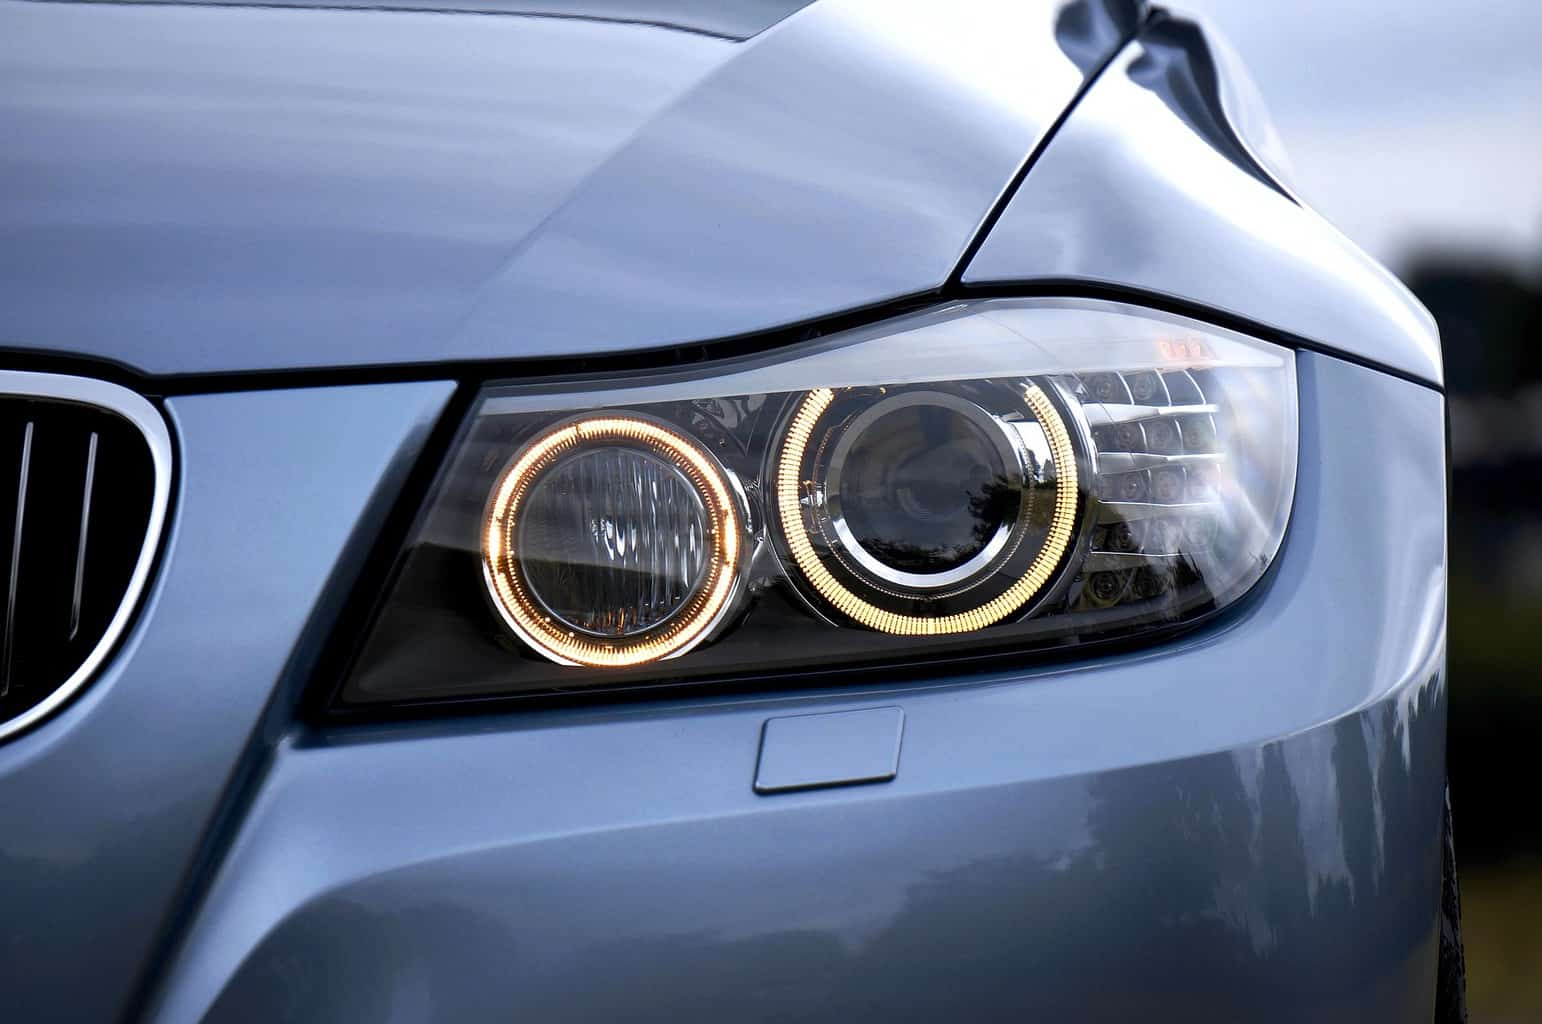 Close up of bulbs for projector headlights